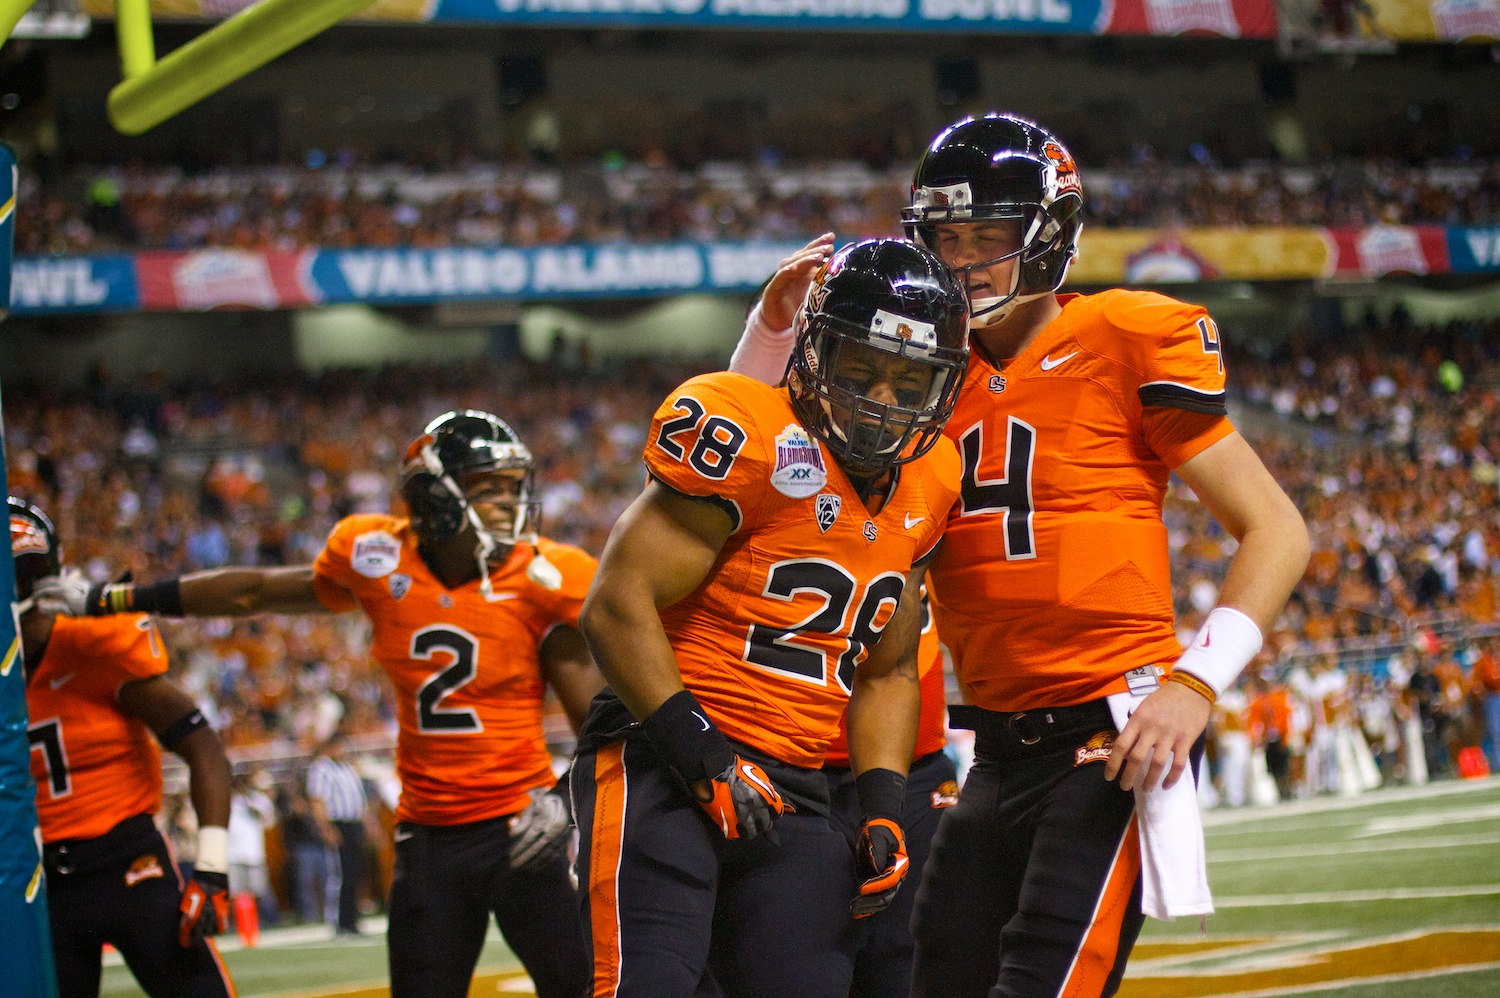 Sean Mannion (4) and Terron Ward (28) celebrate after scoring a touchdown during the 2012 Valero Alamo Bowl in San Antonio, Texas.